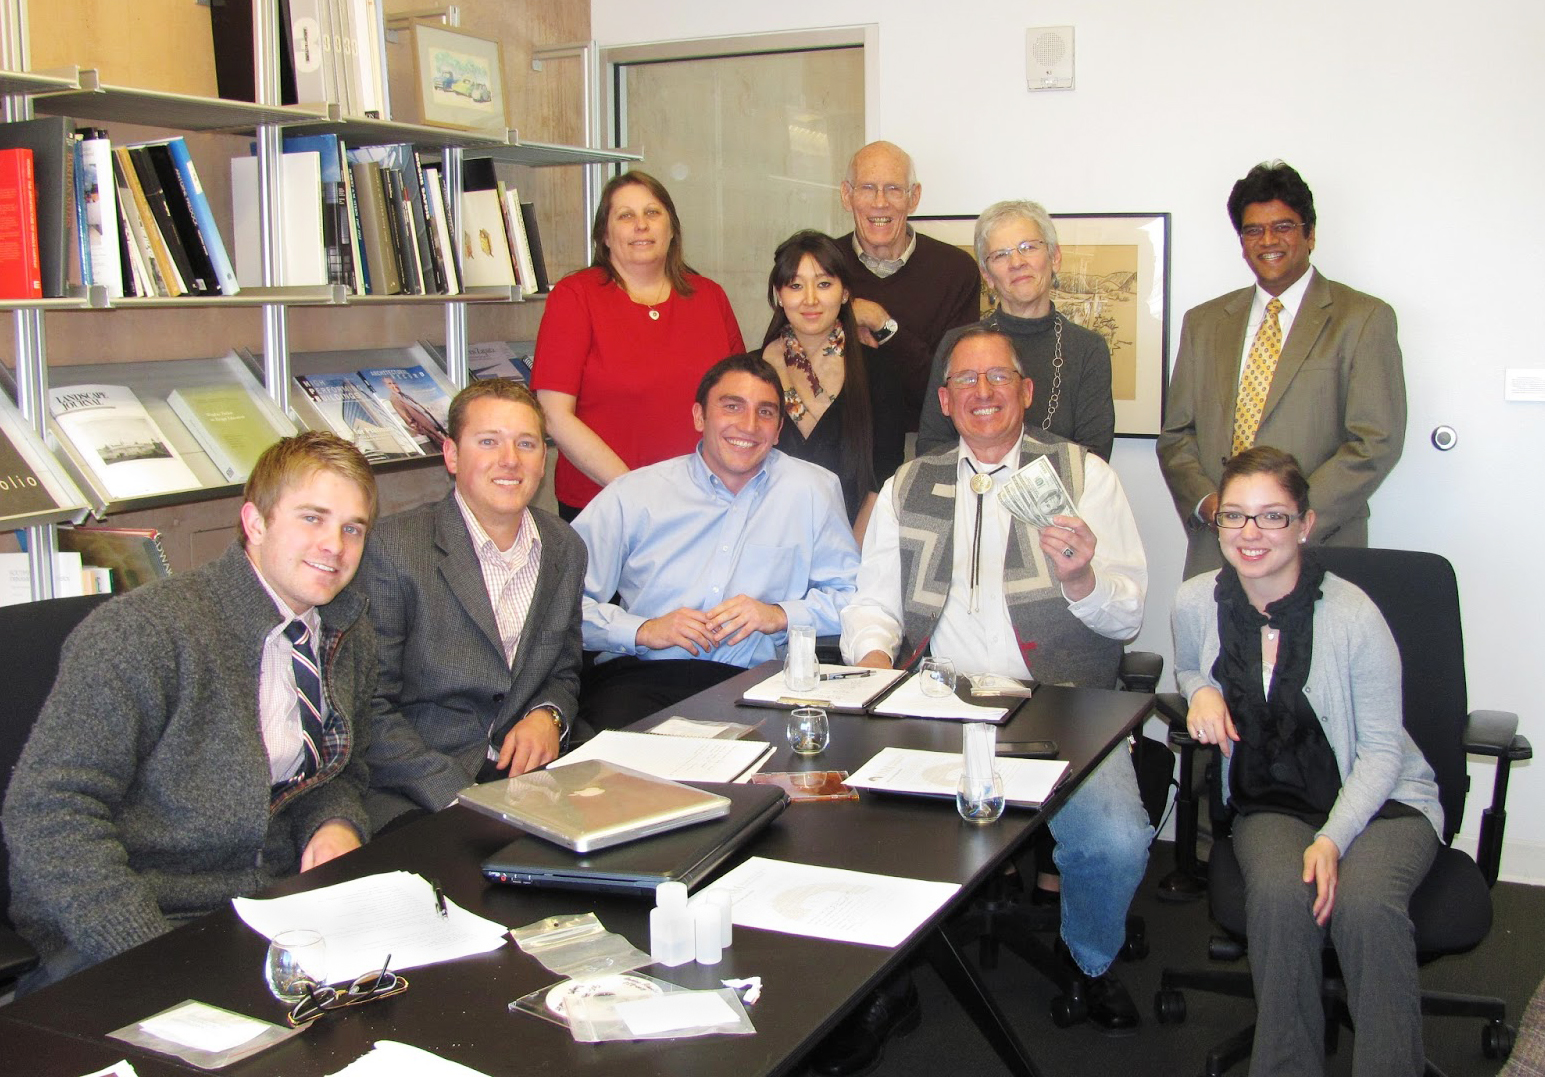 SBI client with UNM Anderson students and UNM professor Dr. Raj Mahto; courtesy UNM Anderson School of Management website